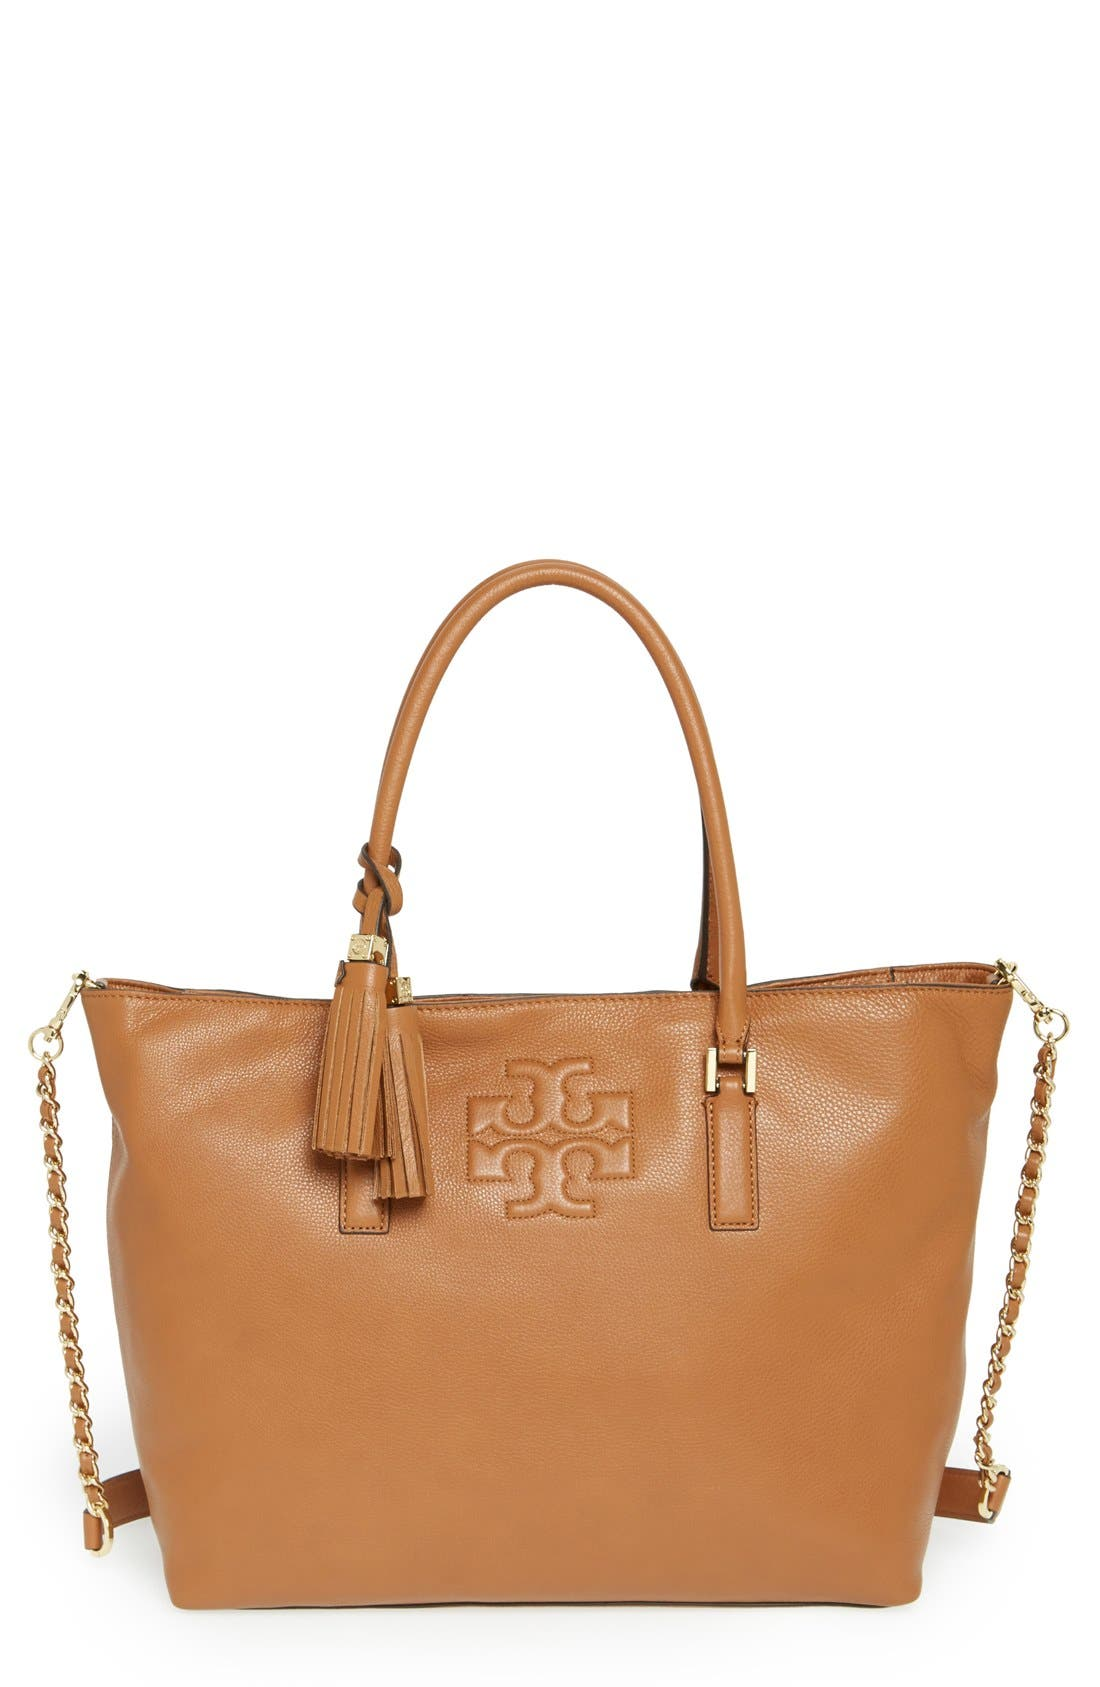 Main Image - Tory Burch 'Thea' Leather Tote